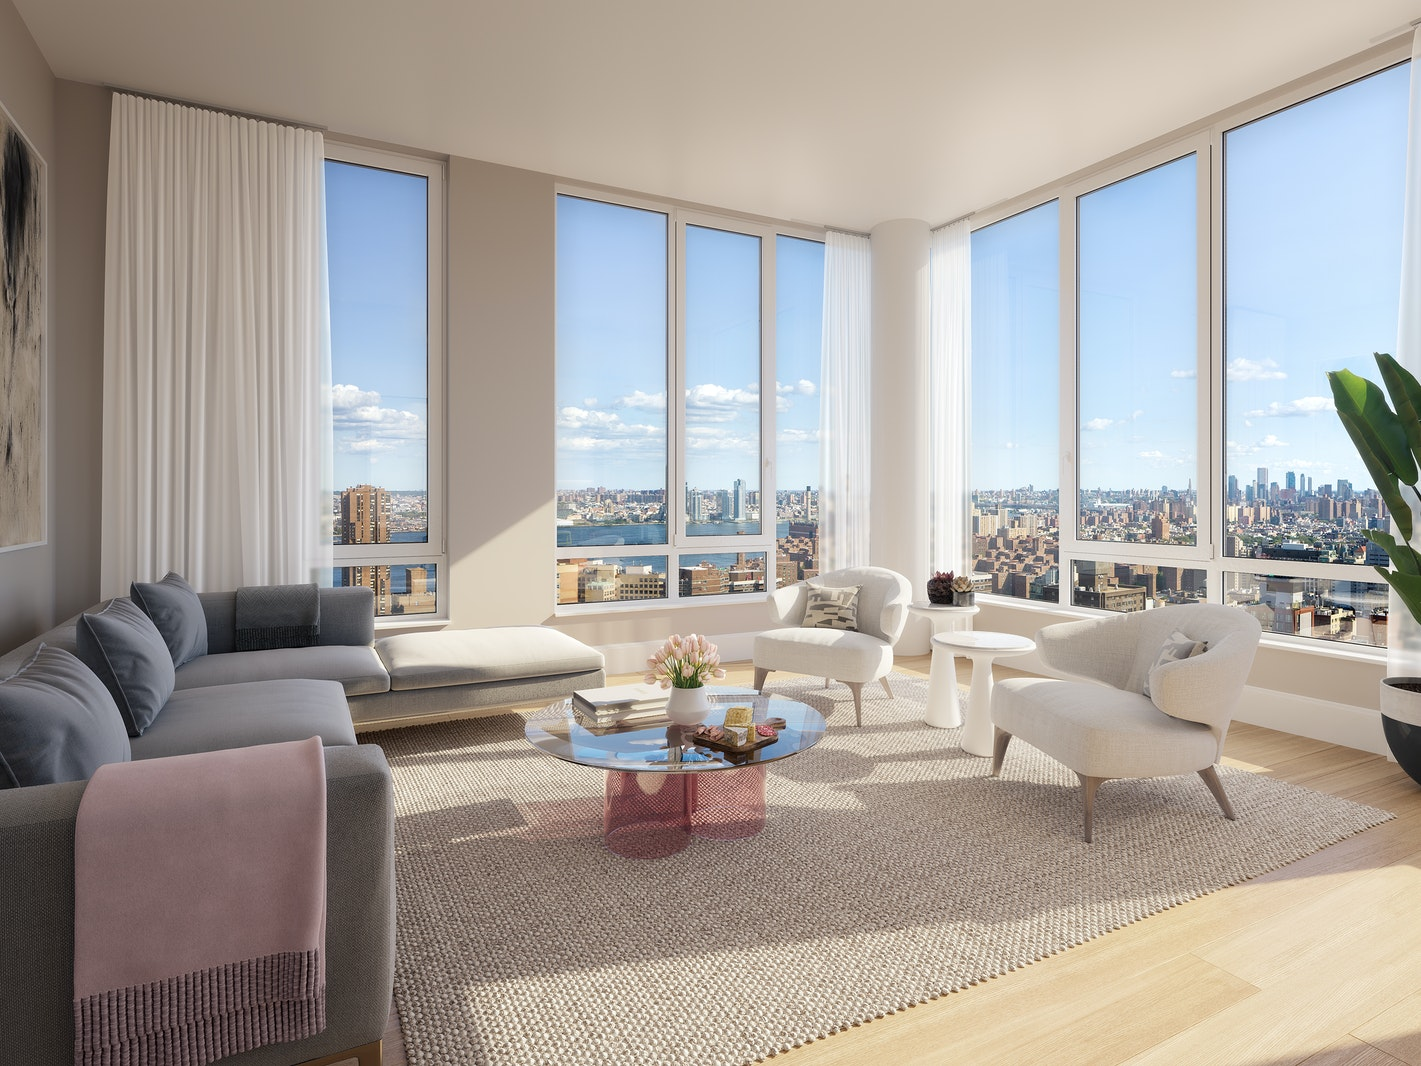 368 Third Avenue 6d, Midtown East, NYC, 10016, $1,335,000, Property For Sale, Halstead Real Estate, Photo 1